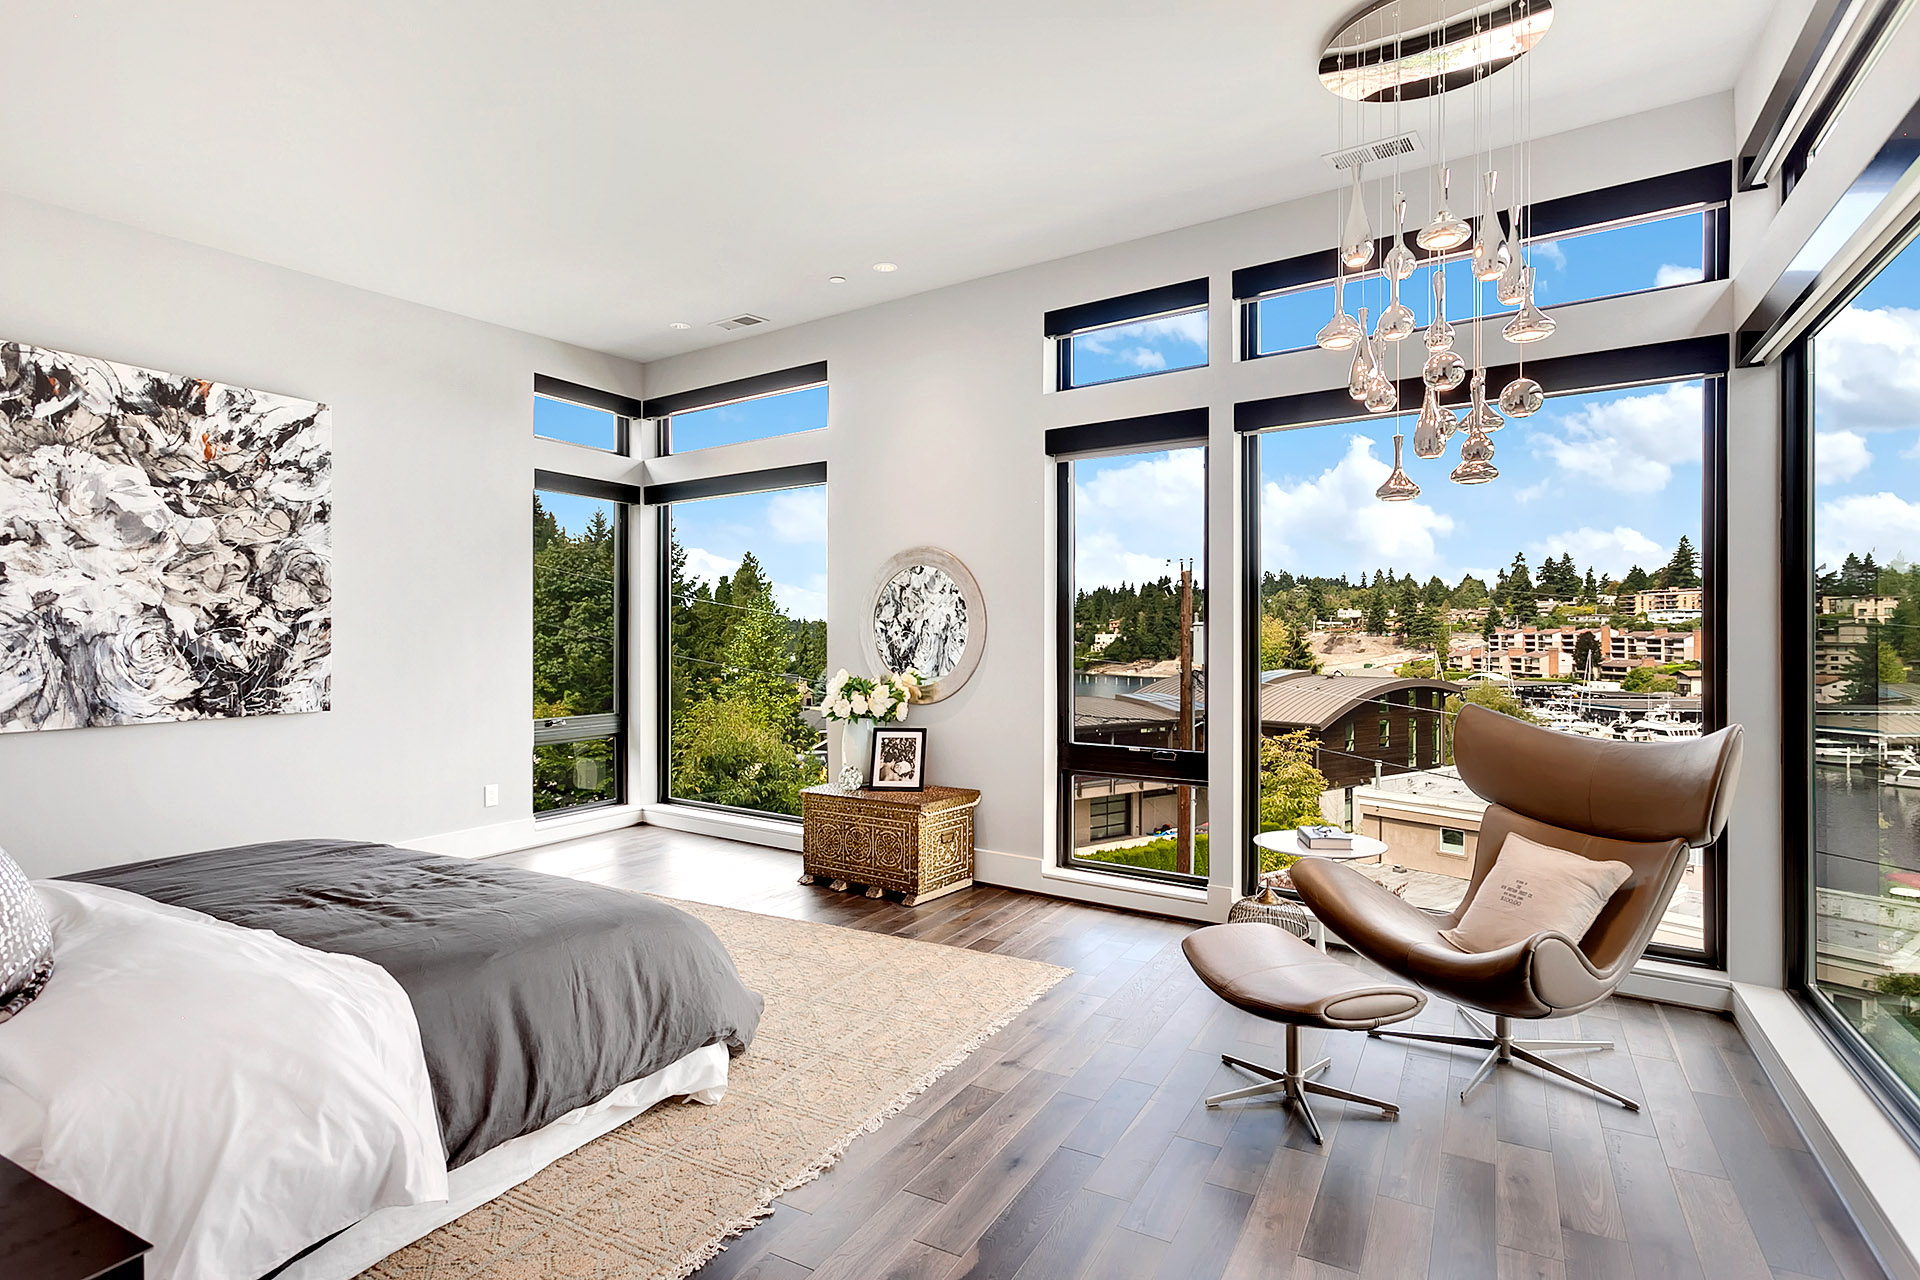 How to Photograph Bedrooms for Real Estate